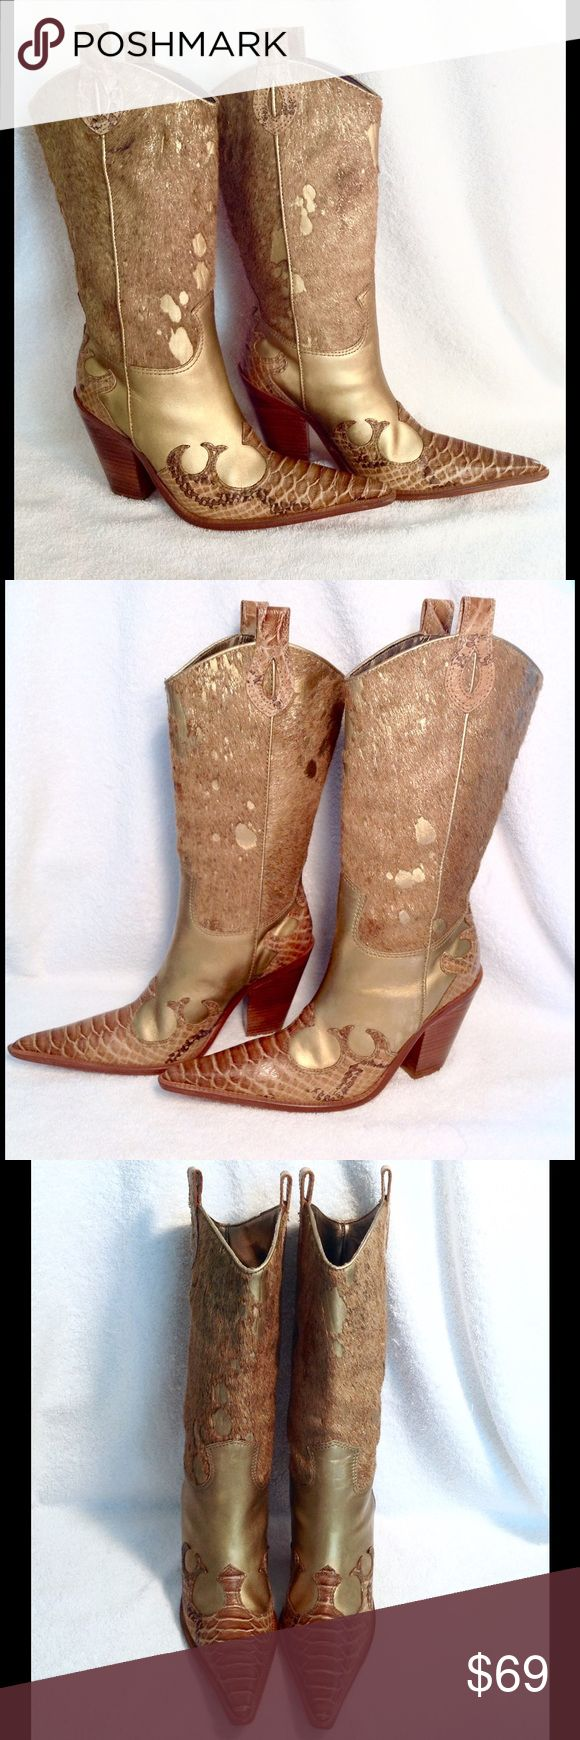 """Para Raio Sz 6M Western Boots Para Raio~Women's Sz 6M..ALL LEATHER! Made in Brazil Gold Leather with Gold Metallic and Calf-Hair Shaft and Part Croc Embossed Pearlized Toe. Awesome Cowboy/Western Style Boots. Very Pointed Toe and Stacked Cuban Heel!! Full Leather Upper and Leather Sole! Natural Light/Dark Variations in Calf Hair! Soles are BARELY Used! They Run a little big because of the Pointy Toe! AWESOME Condition! No Rips, Holes, Stains or Smells Inside and Out! Shaft 12"""" Calf…"""